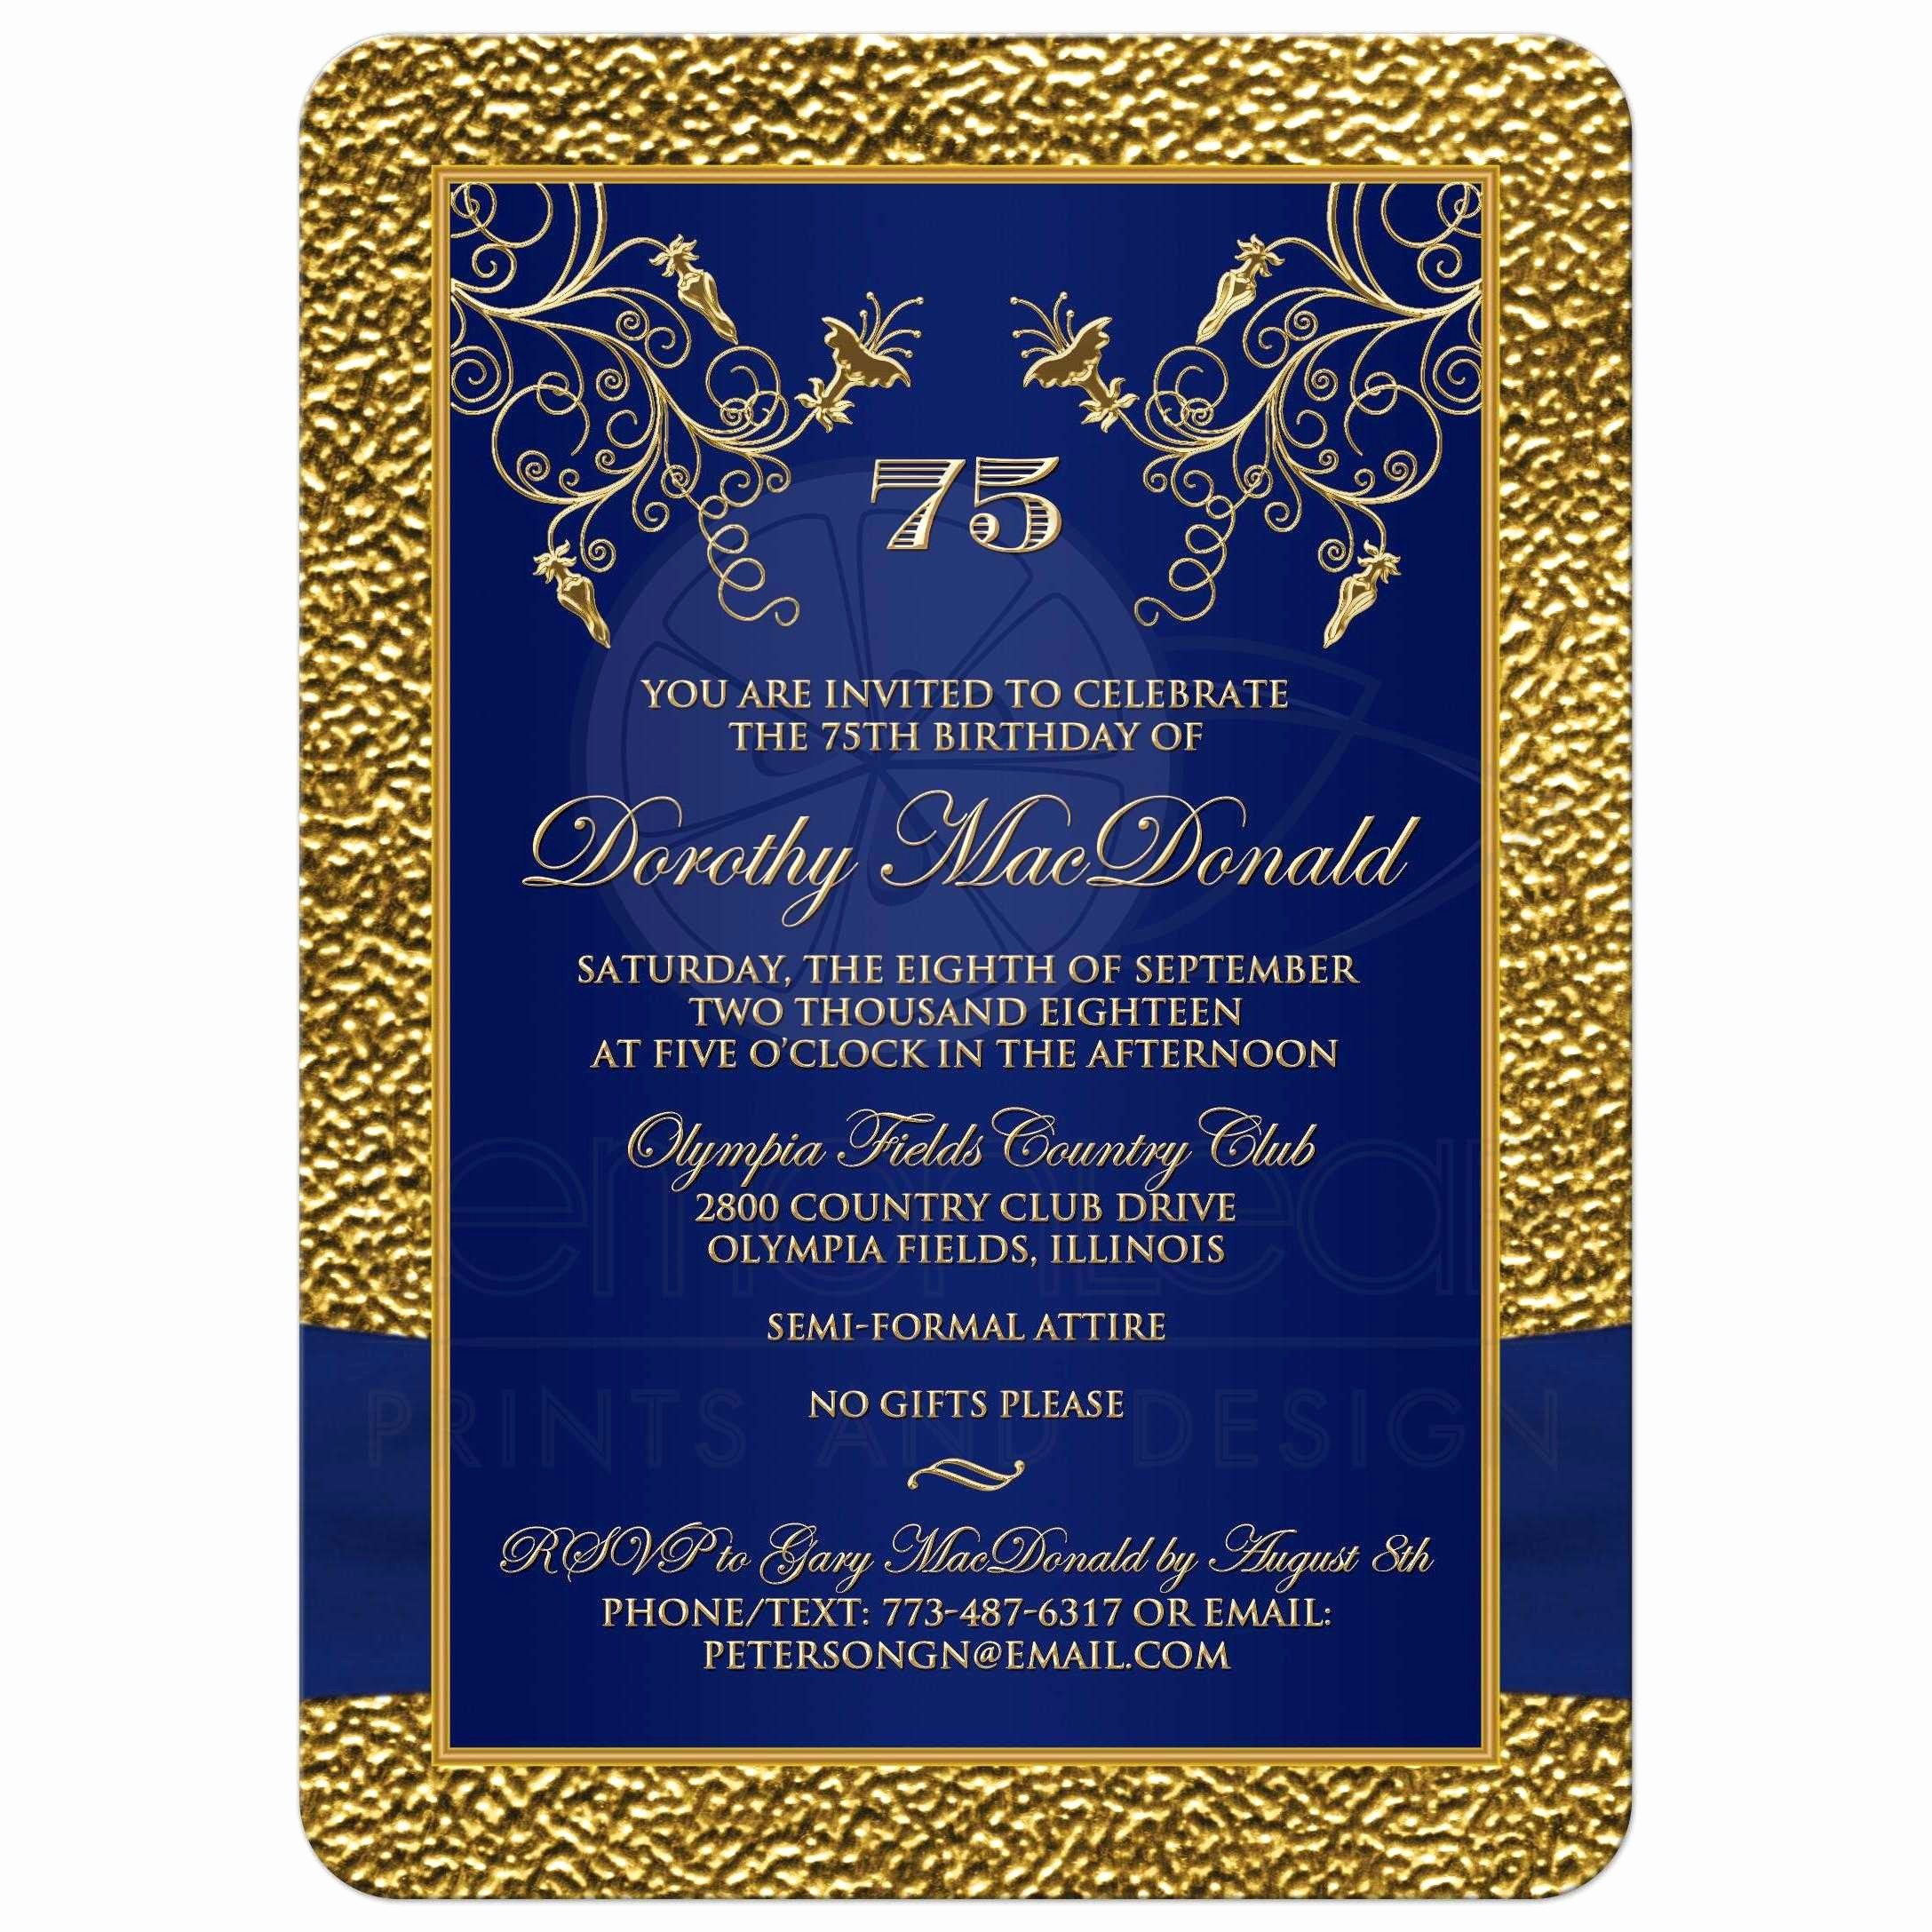 Blue and Gold Invitation Template Inspirational Printed Ribbon and Jewels Template Gold Navy Blue